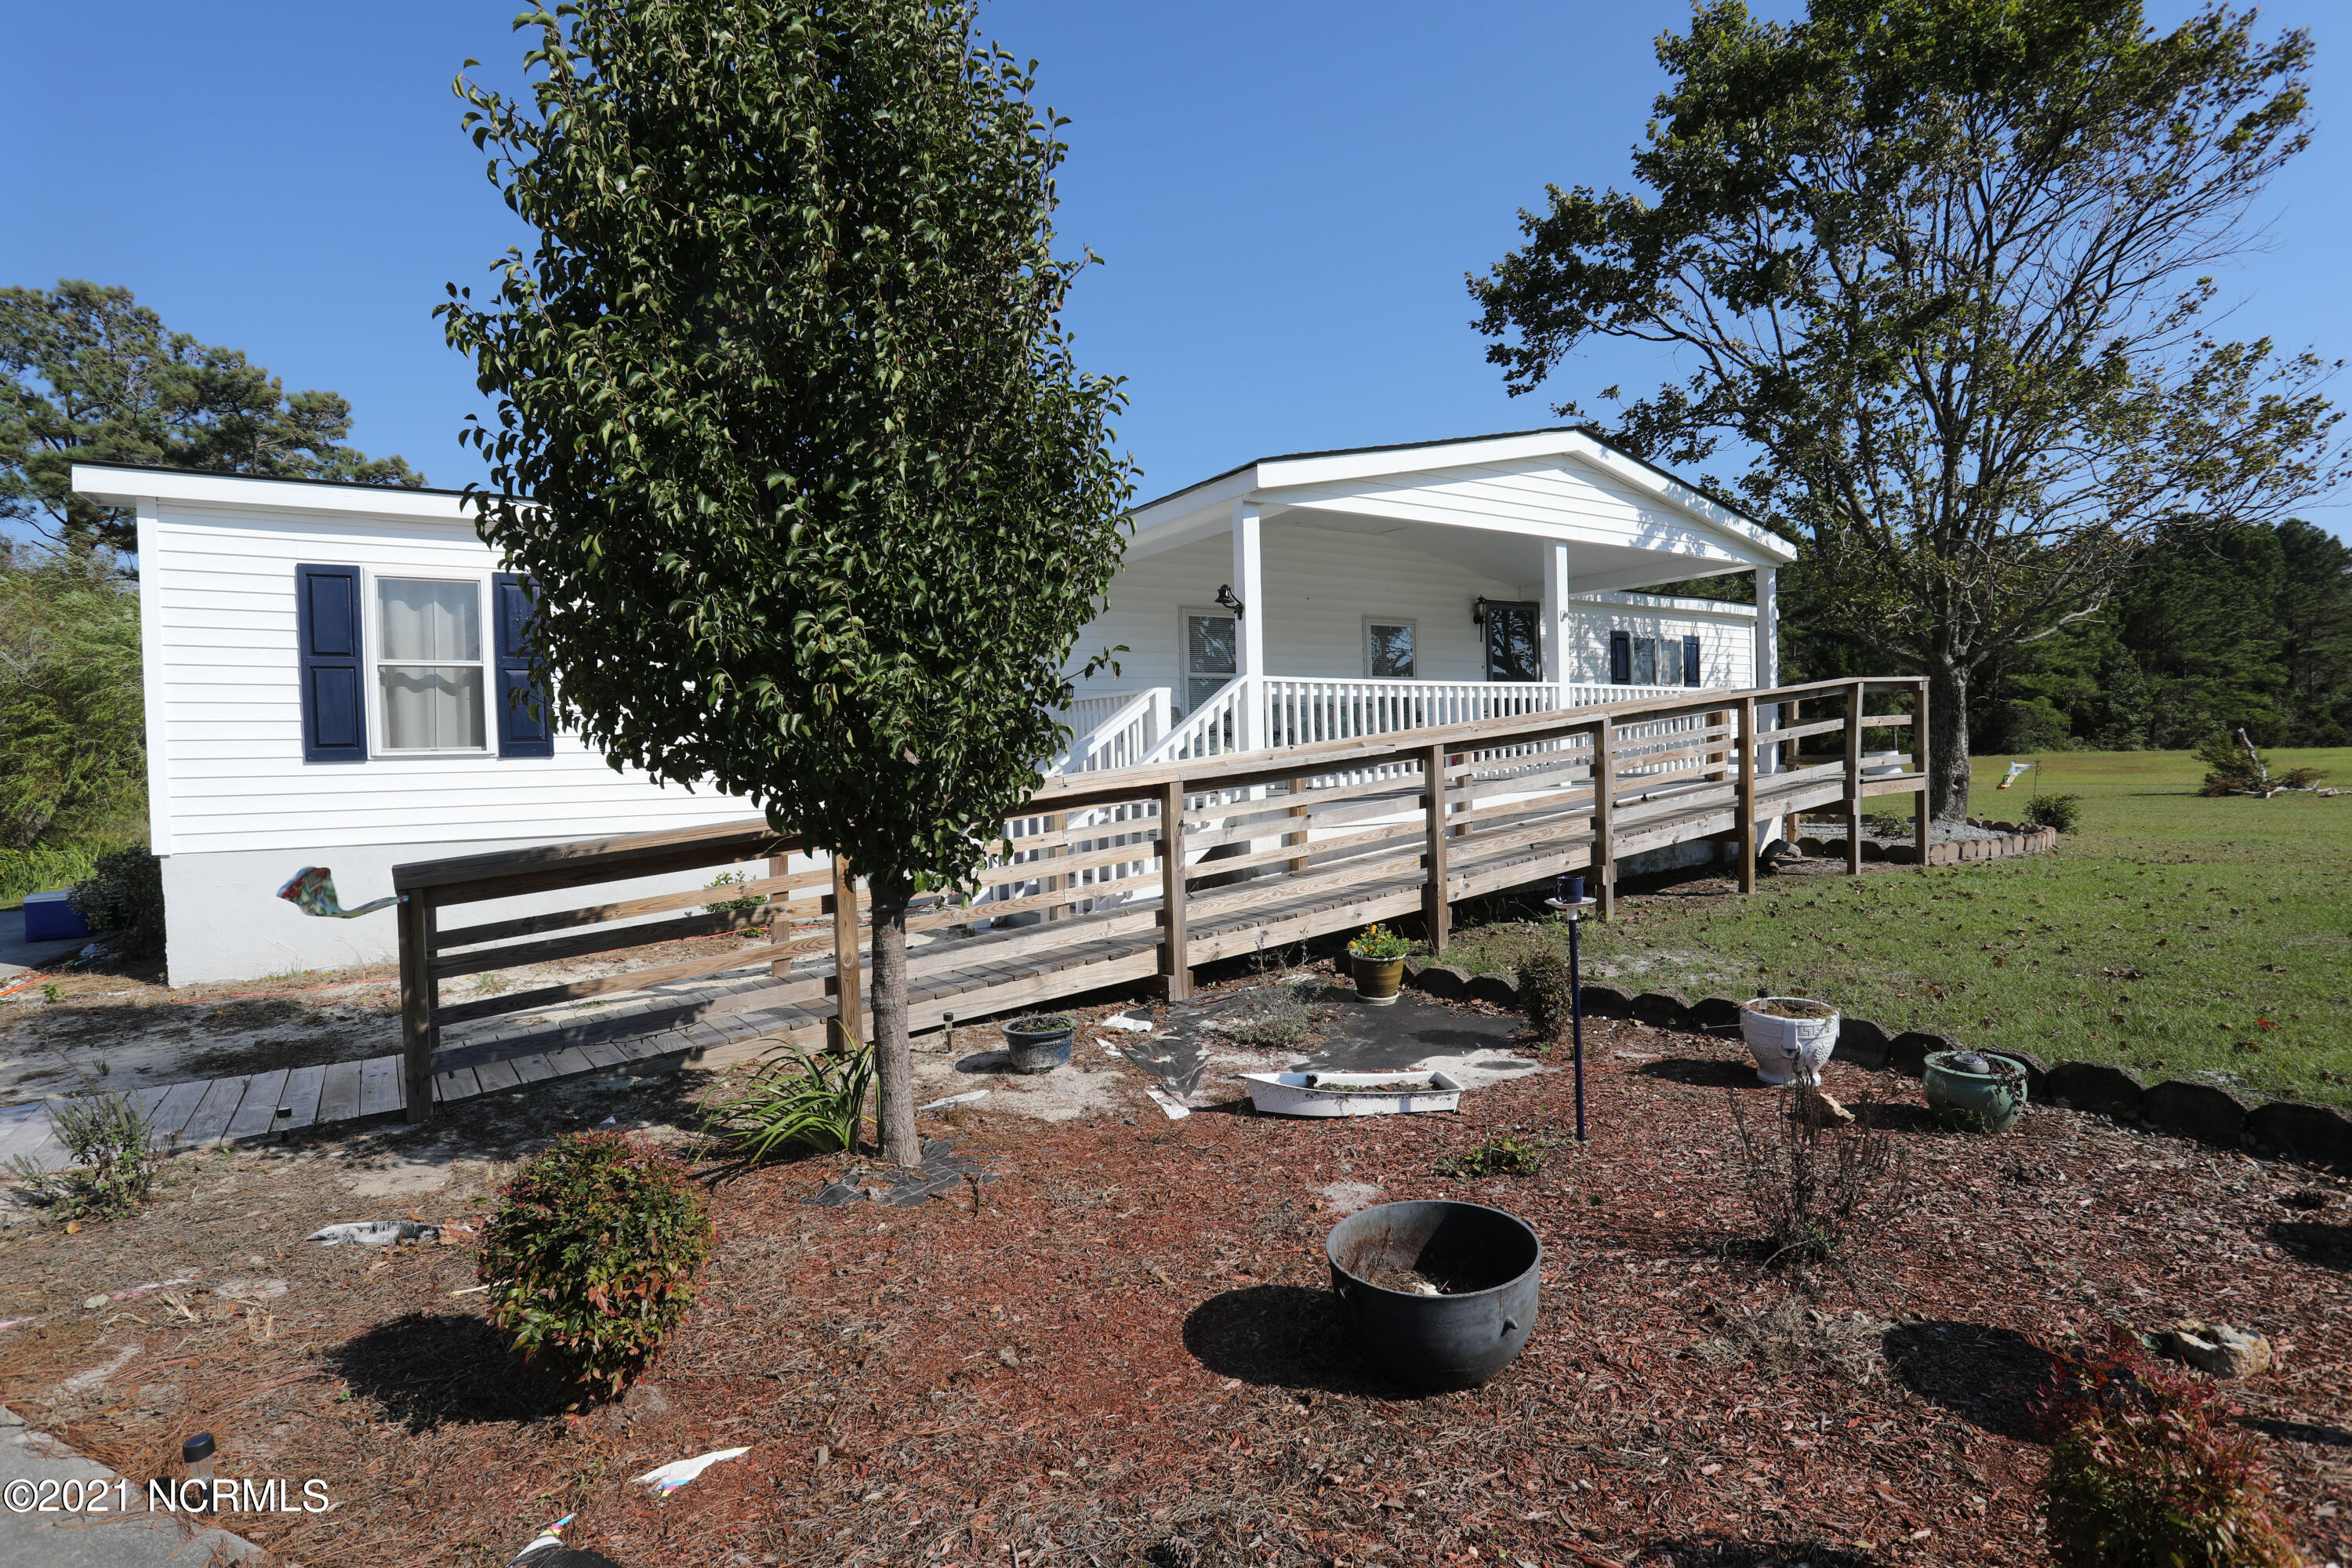 This three bedroom, two bath home is located just across the bridge form Emerald Isle, and just over 3 miles from the Wildlife boat ramp. Home sits on .66 acres of beautiful land.  The 20x25 workshop located in back has 2 covered storage areas, power, water, and a wood stove.  Inside the home has an open floor plan with wood flooring and a sunroom that can be used as an office.  The entrance is lined by trees.  There is a shallow well for watering, updated windows and A/C, a newer roof and updated siding and a concrete raised foundation.  Billboard rental income $1800/year.  A must see!